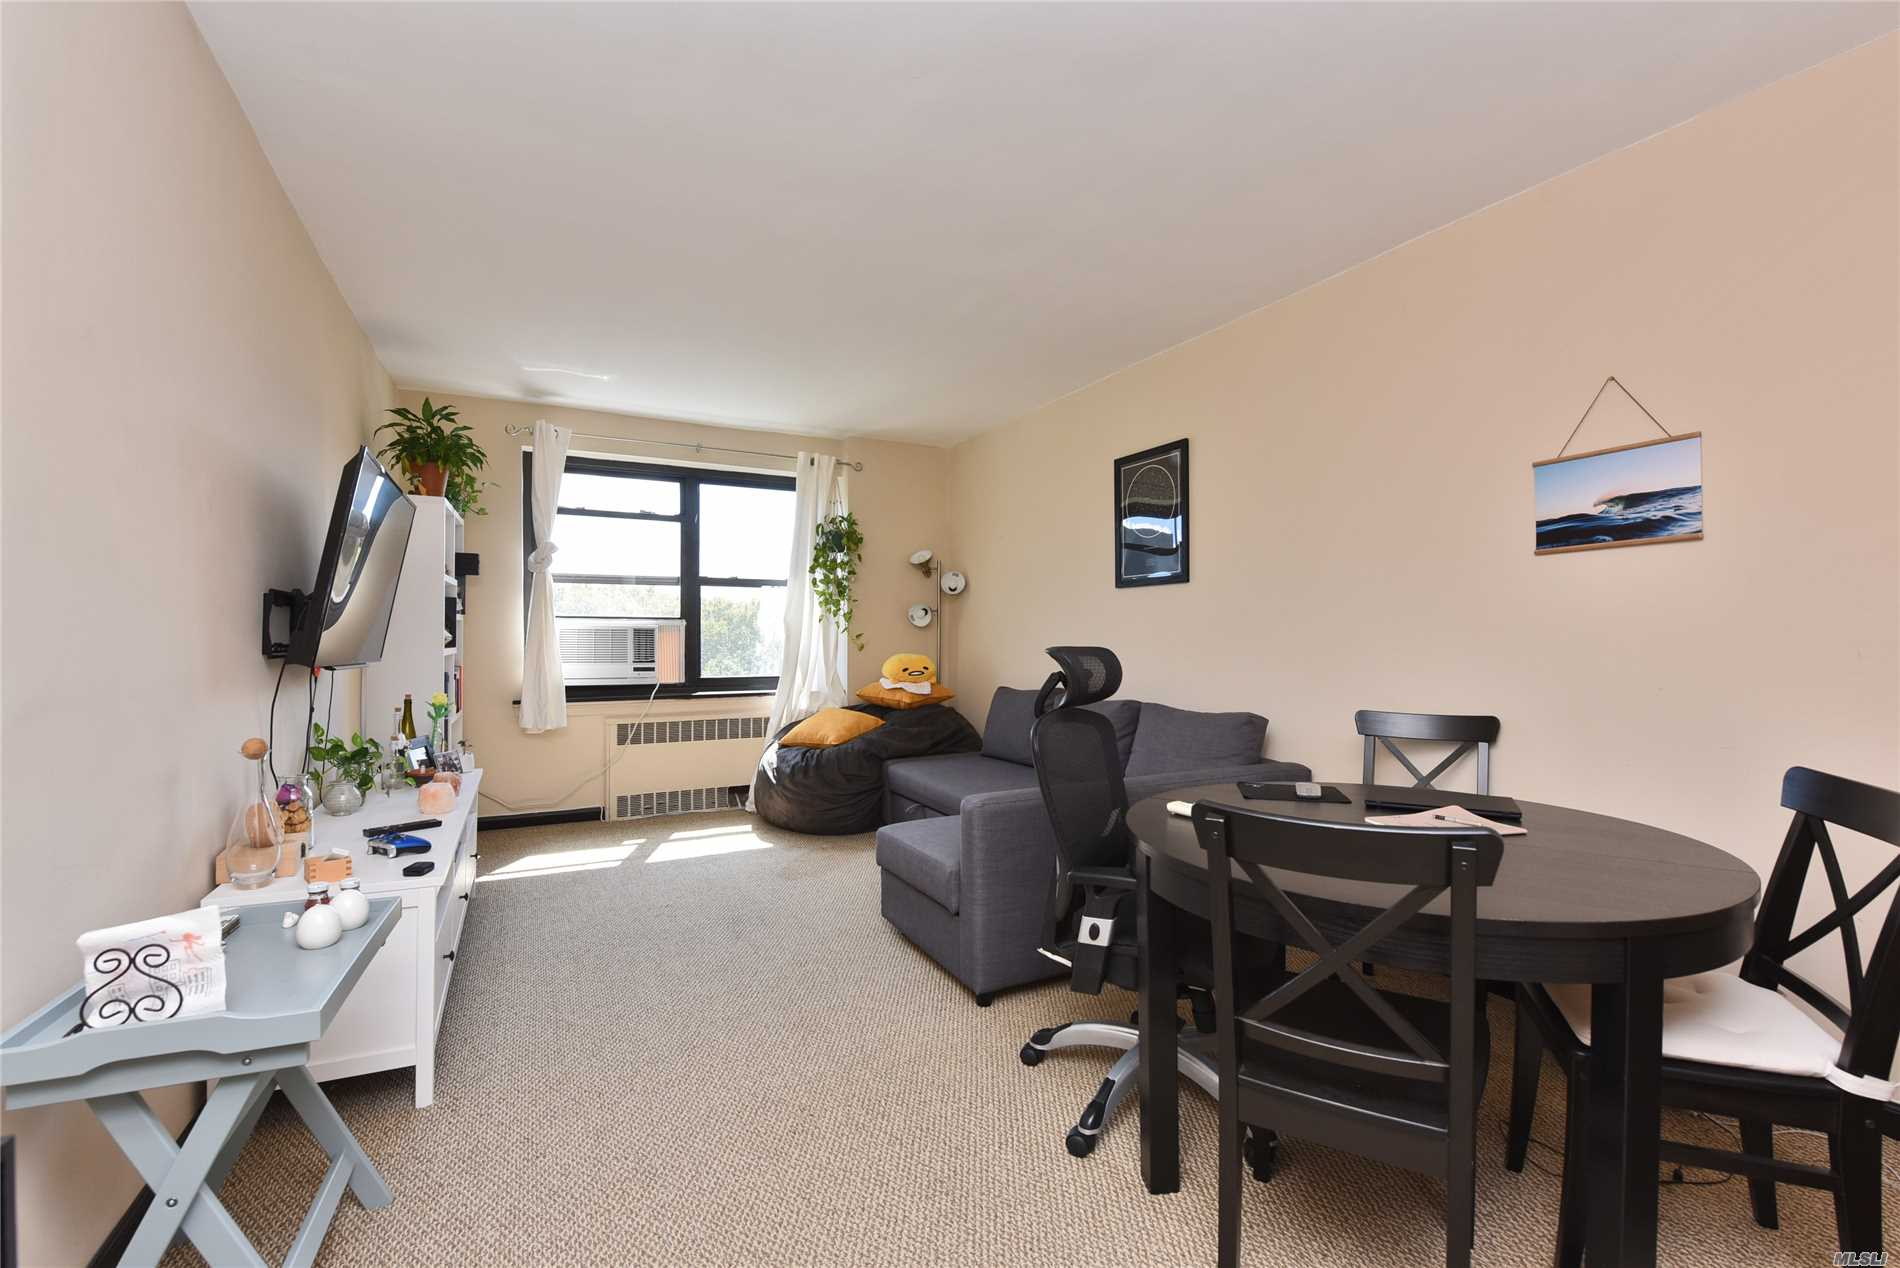 Large One Bedroom Coop Unit In Prime N. Flushing, Fully Renovated Kitchen And Bathroom, Fresh Paint, Modern Concept Kitchen And Bathroom Design, South Exposure , Sun Soaked Living Room And Bedroom, Low Maintenance Include All Utilities, Close To All Major Highways, Multi-Line Bus To Nyc And Main St. Flushing. Steps Away From Supermarket , Shopping Center , Play Ground , Gym, Laundromat, And Much More To Explore... Sale May Be Subject To Term & Conditions Of An Offering Plan.